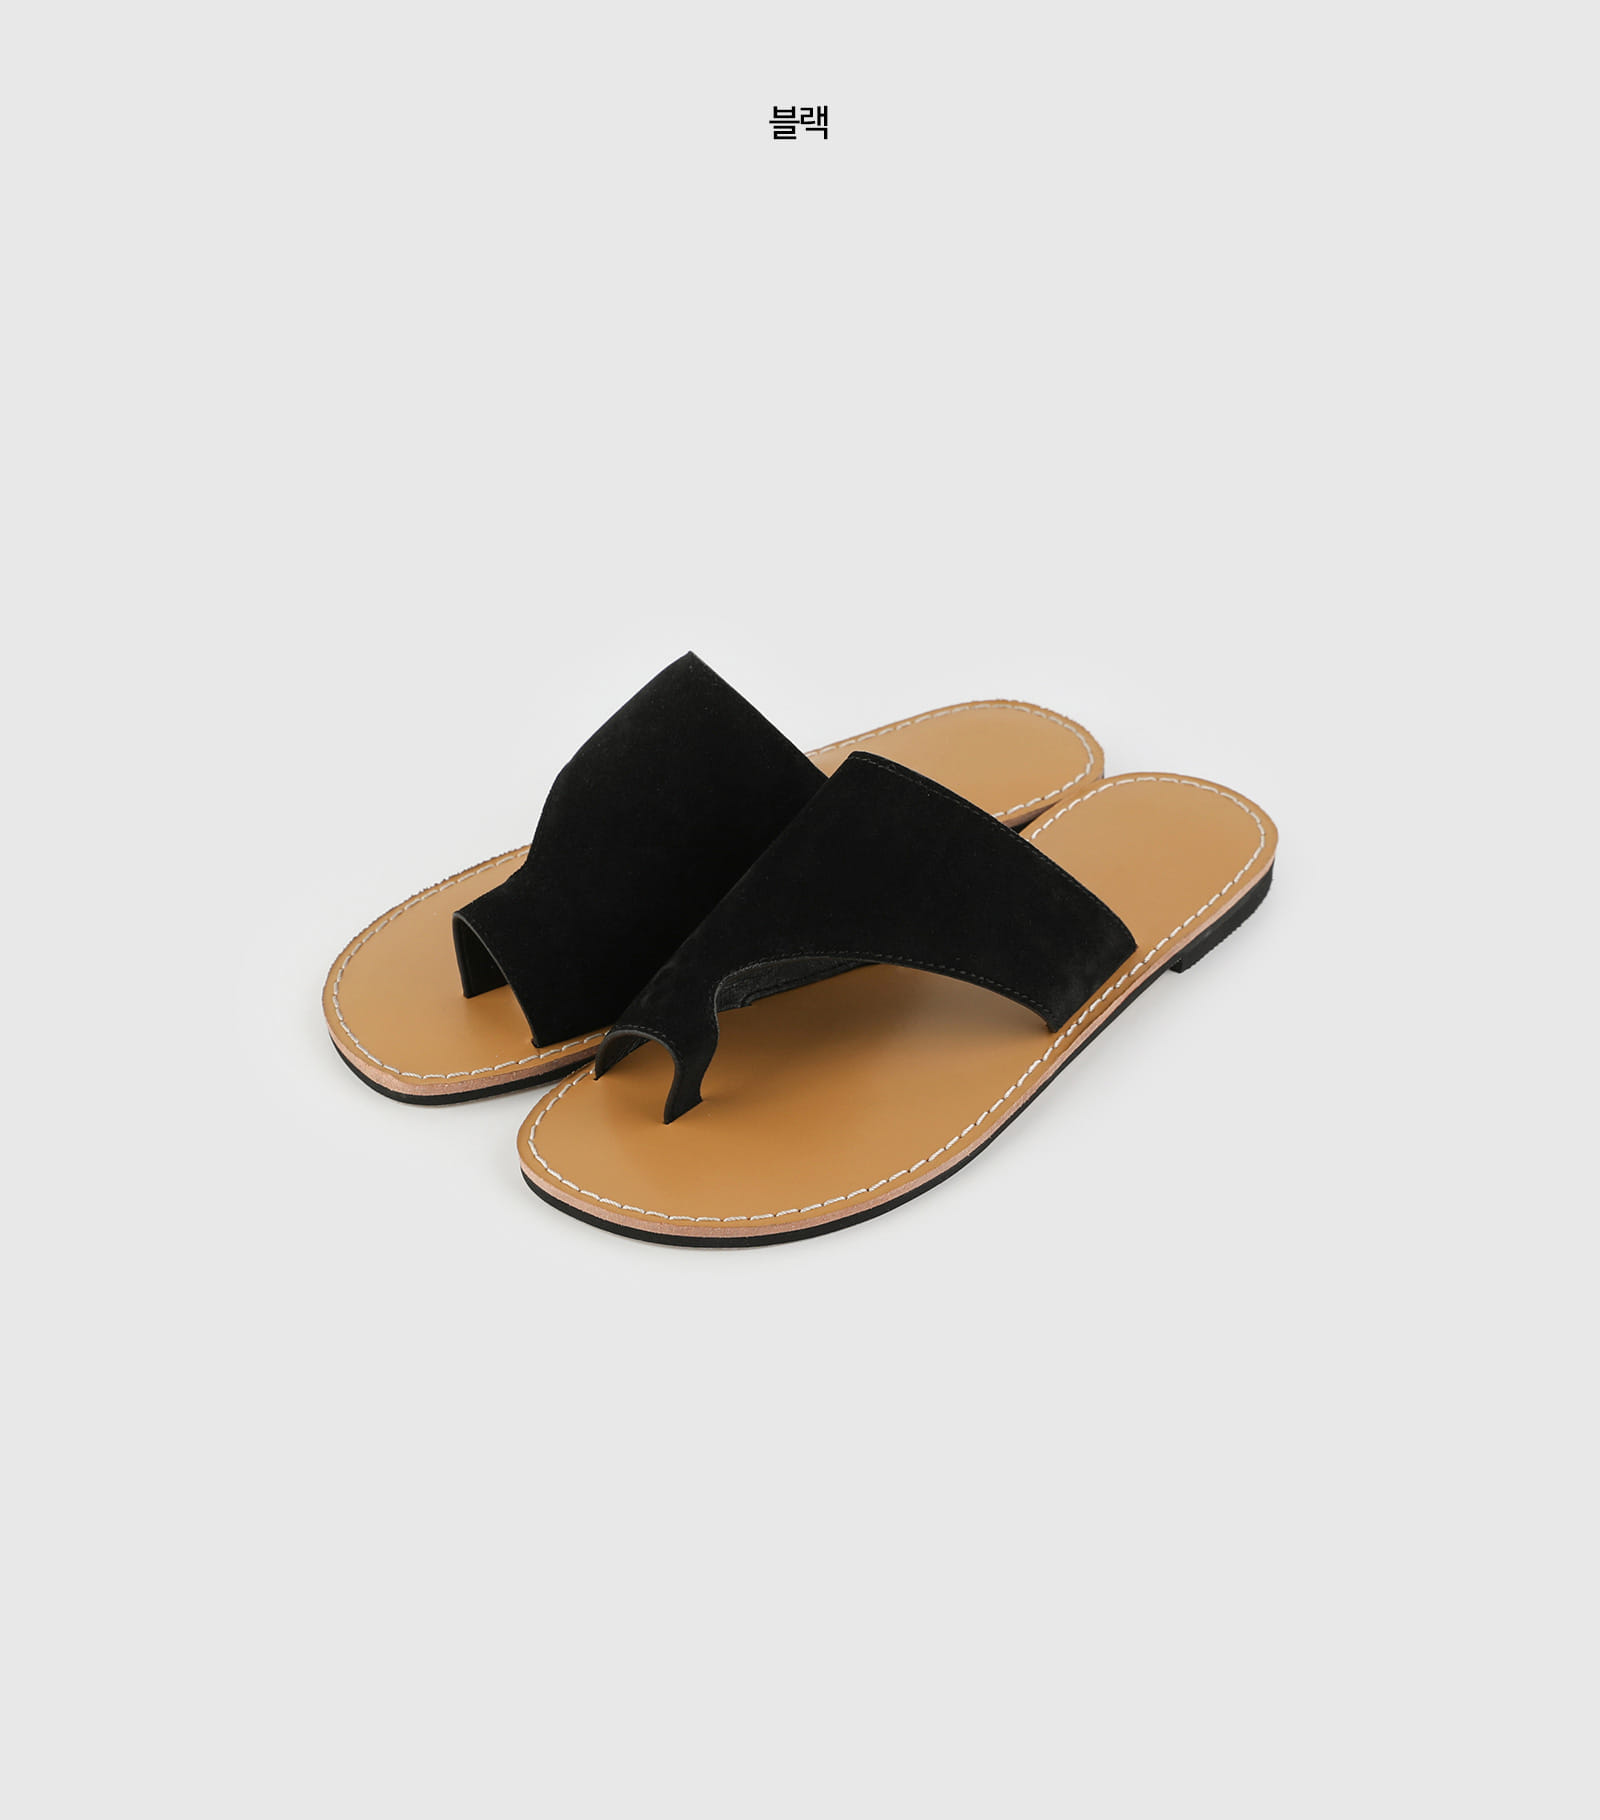 Cover suede toe hold flat sandals